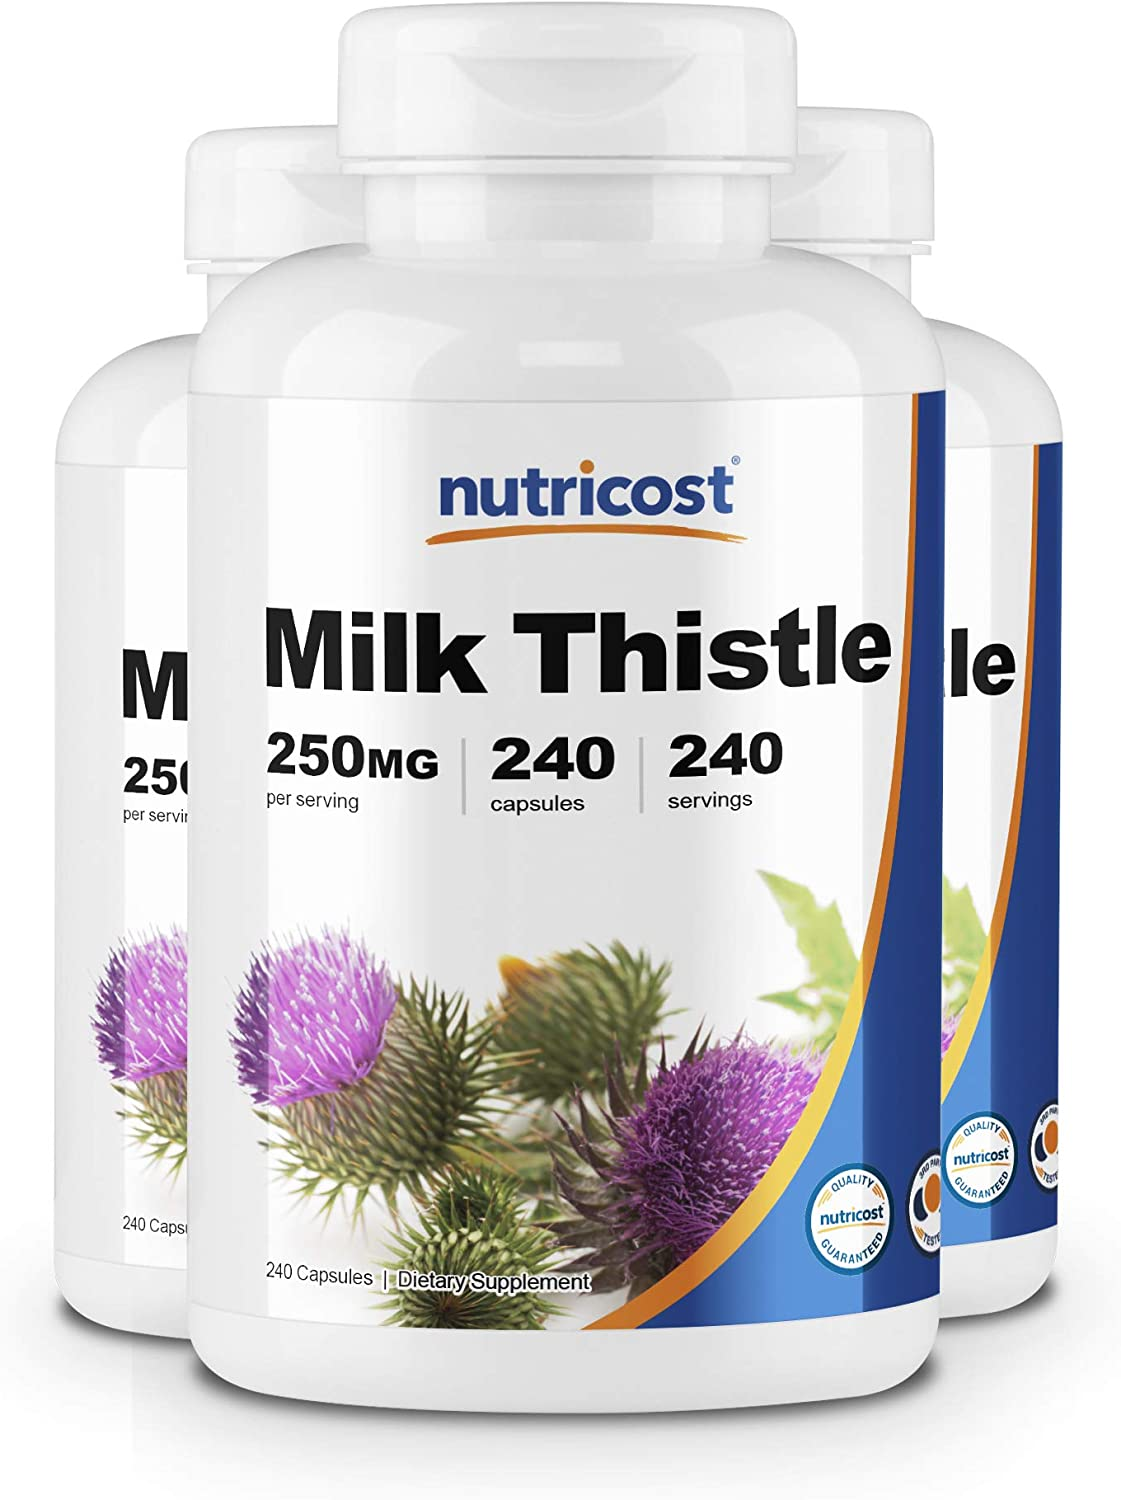 Nutricost Milk Thistle 250mg, 240 Capsules 3 Bottles